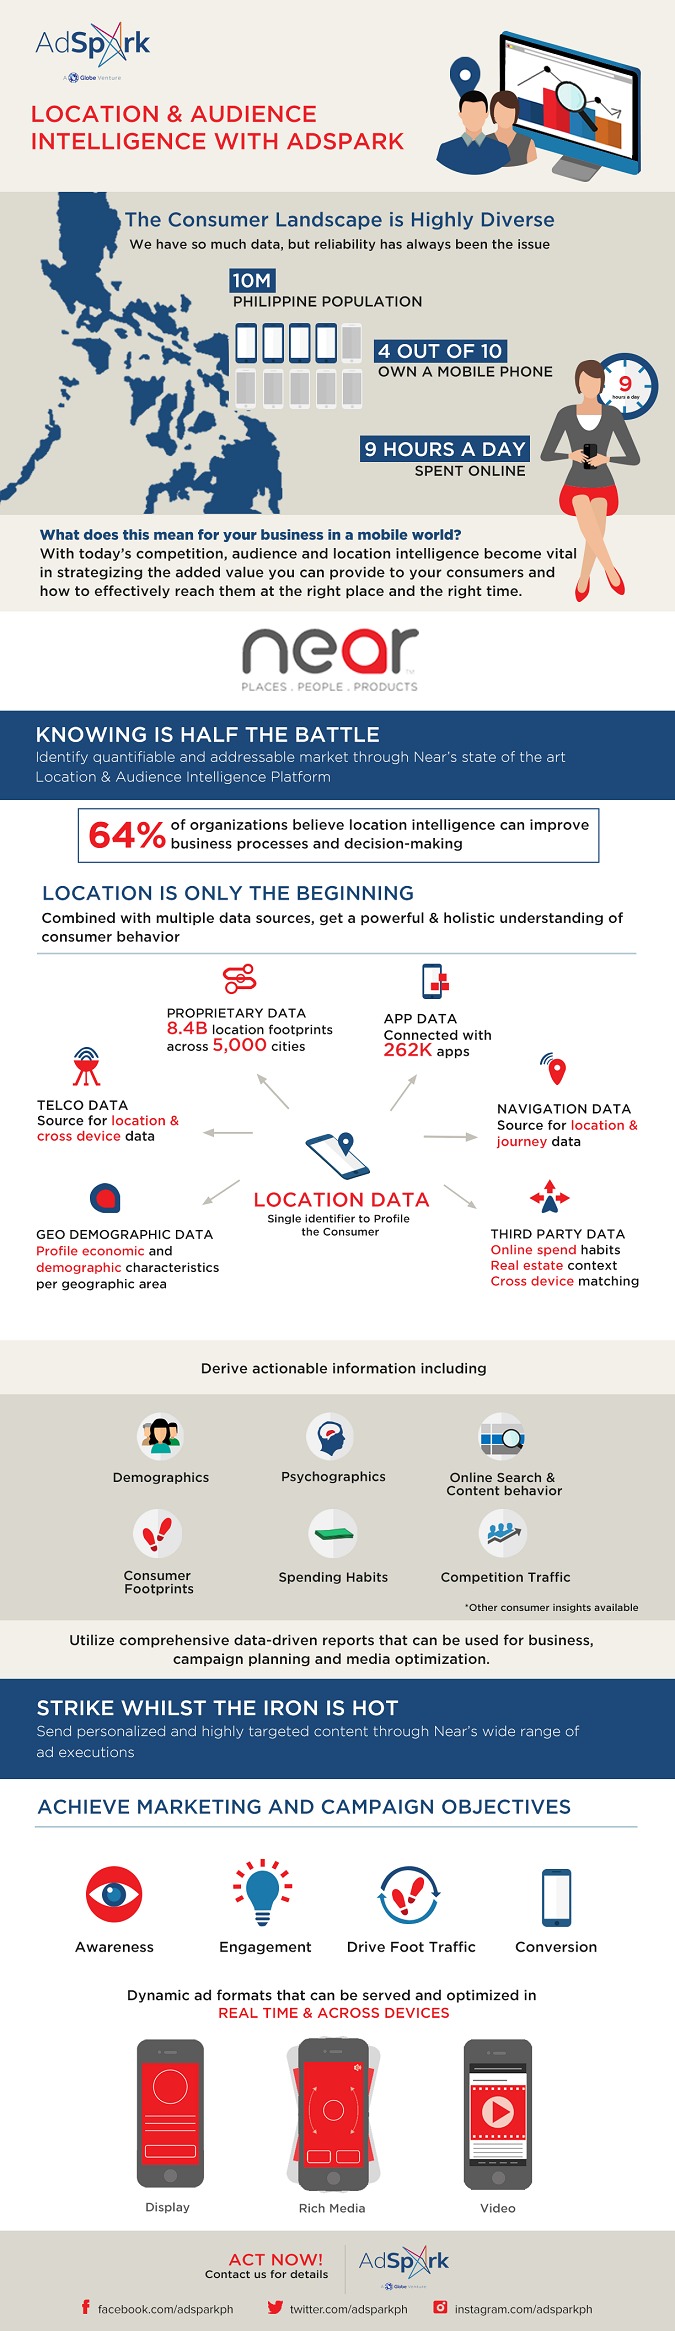 location and audience intelligence for digital and mobile marketing campaigns